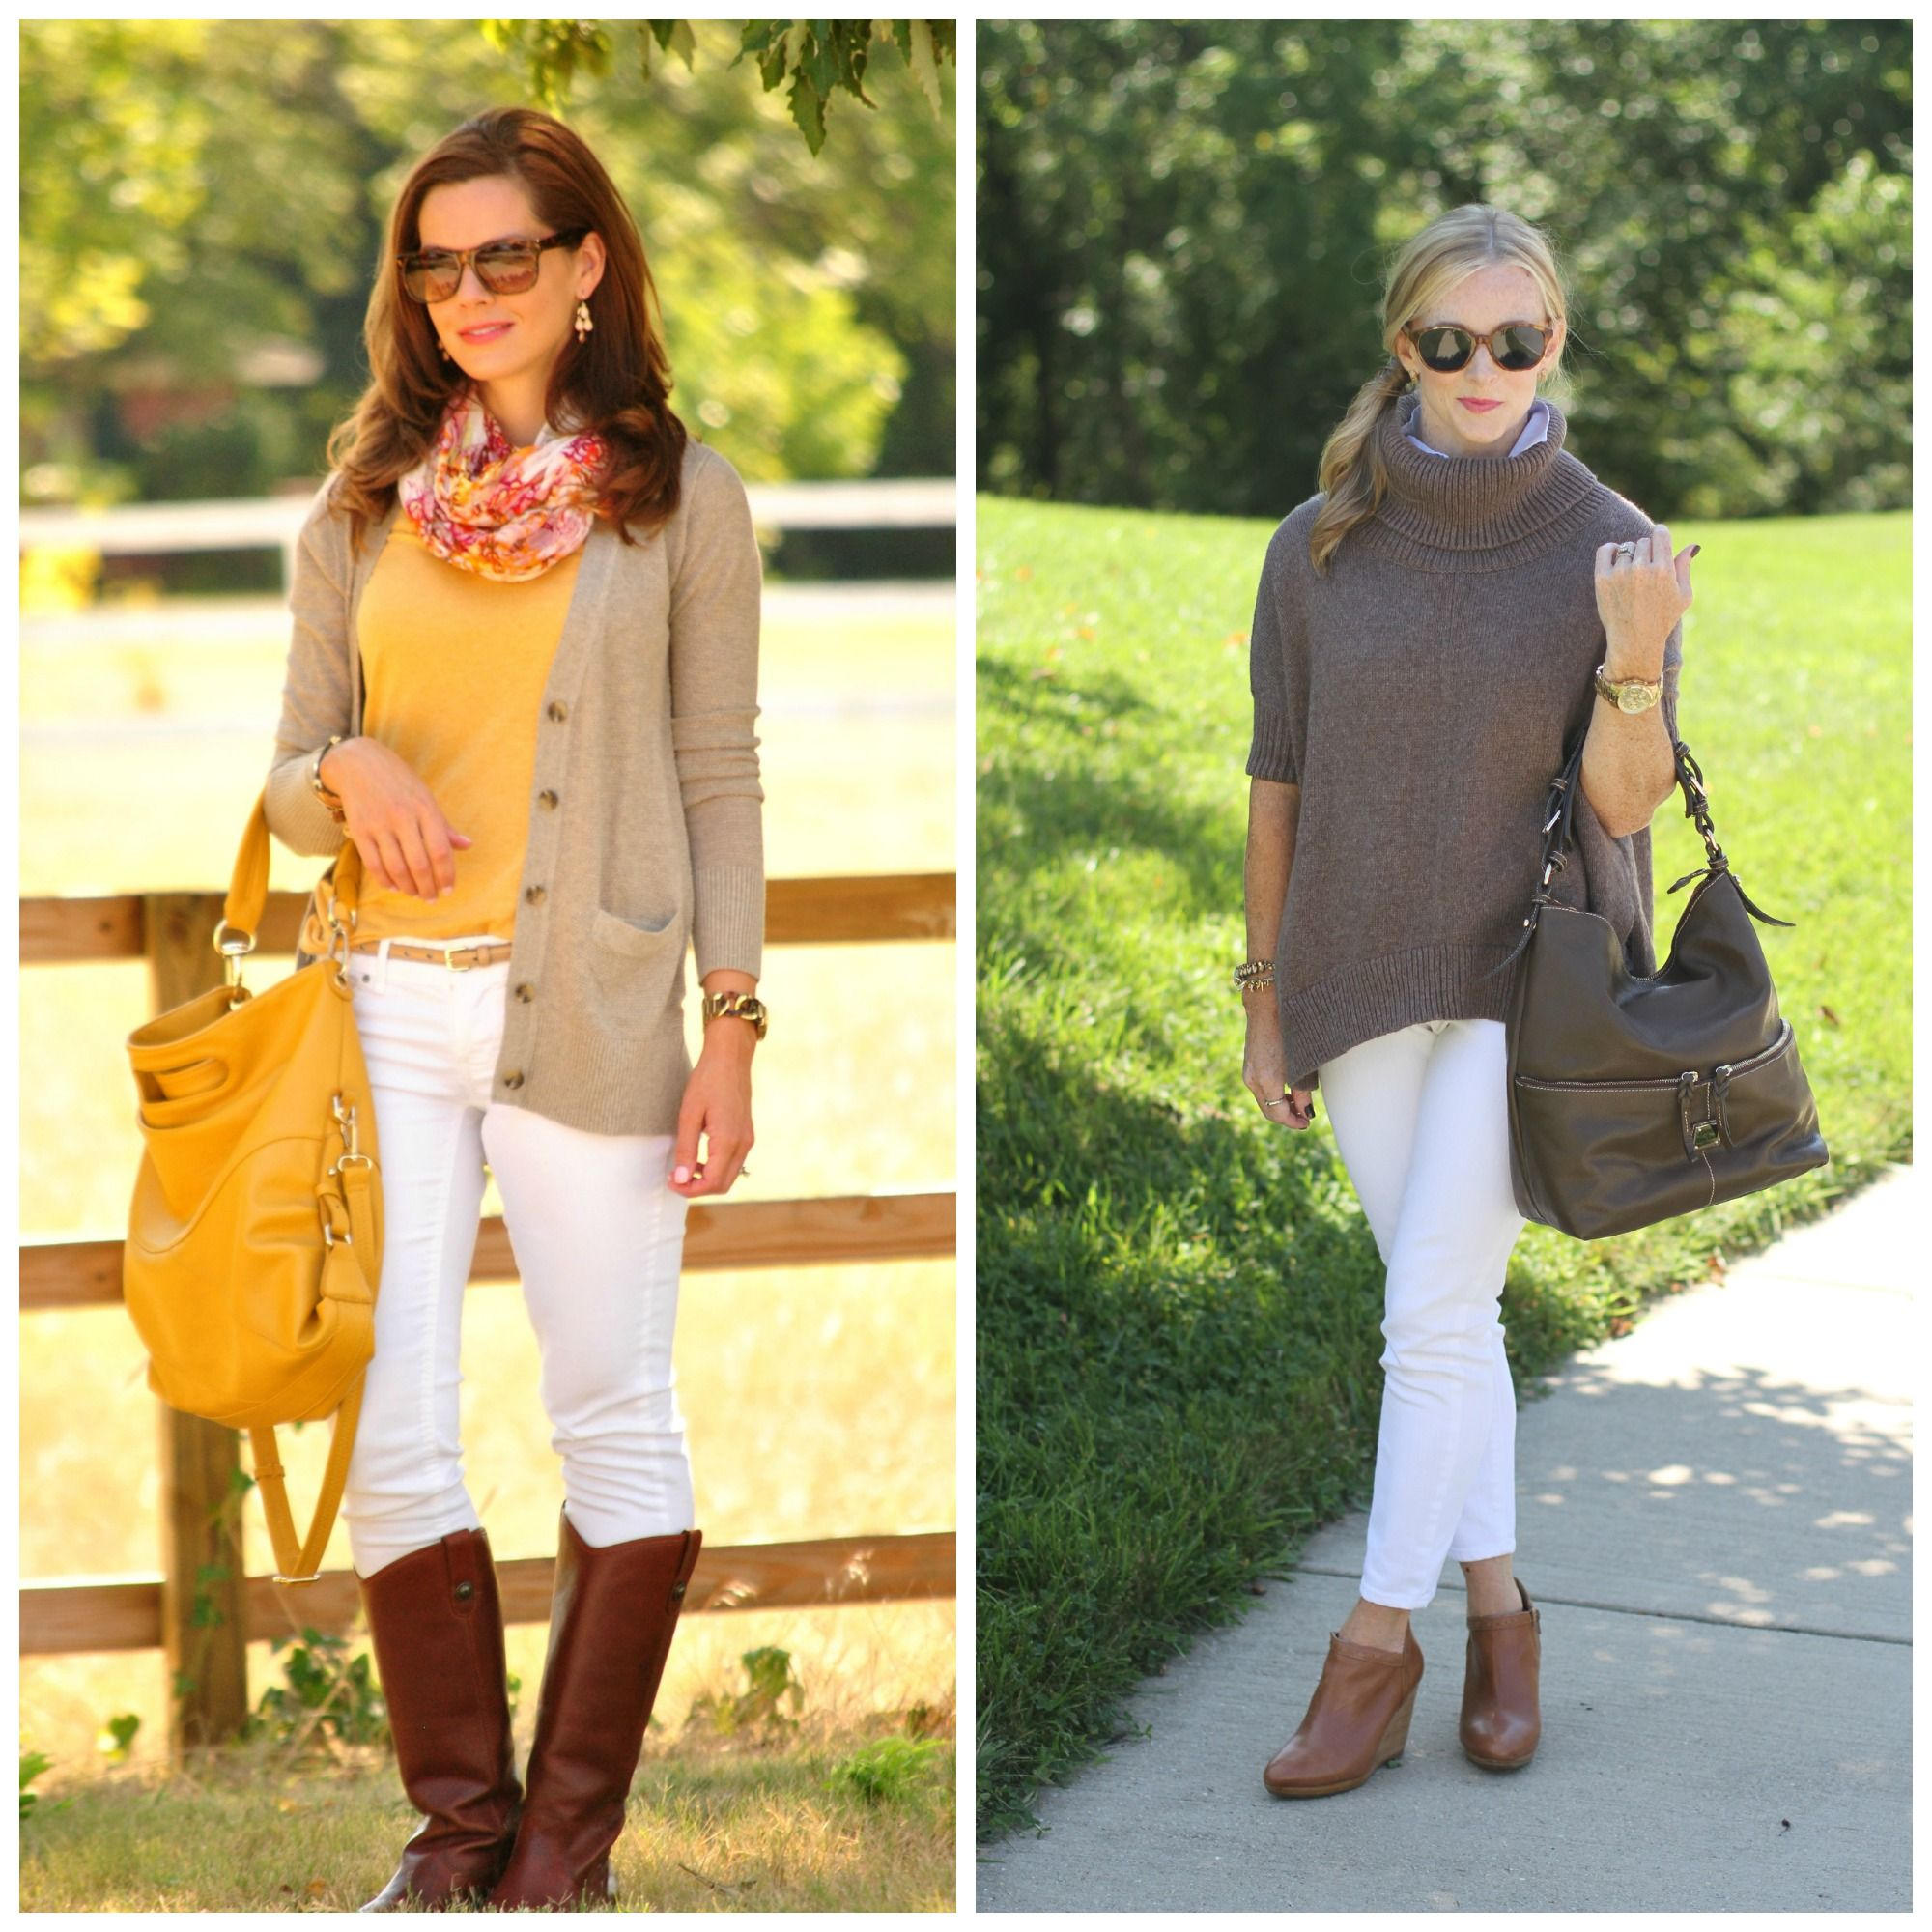 c14bc2d329 Fall Fashion · Fashion Ideas · White Denim · Mom Style · Chic Outfits ·  Just because Labor Day is right around the corner doesn t mean you have to